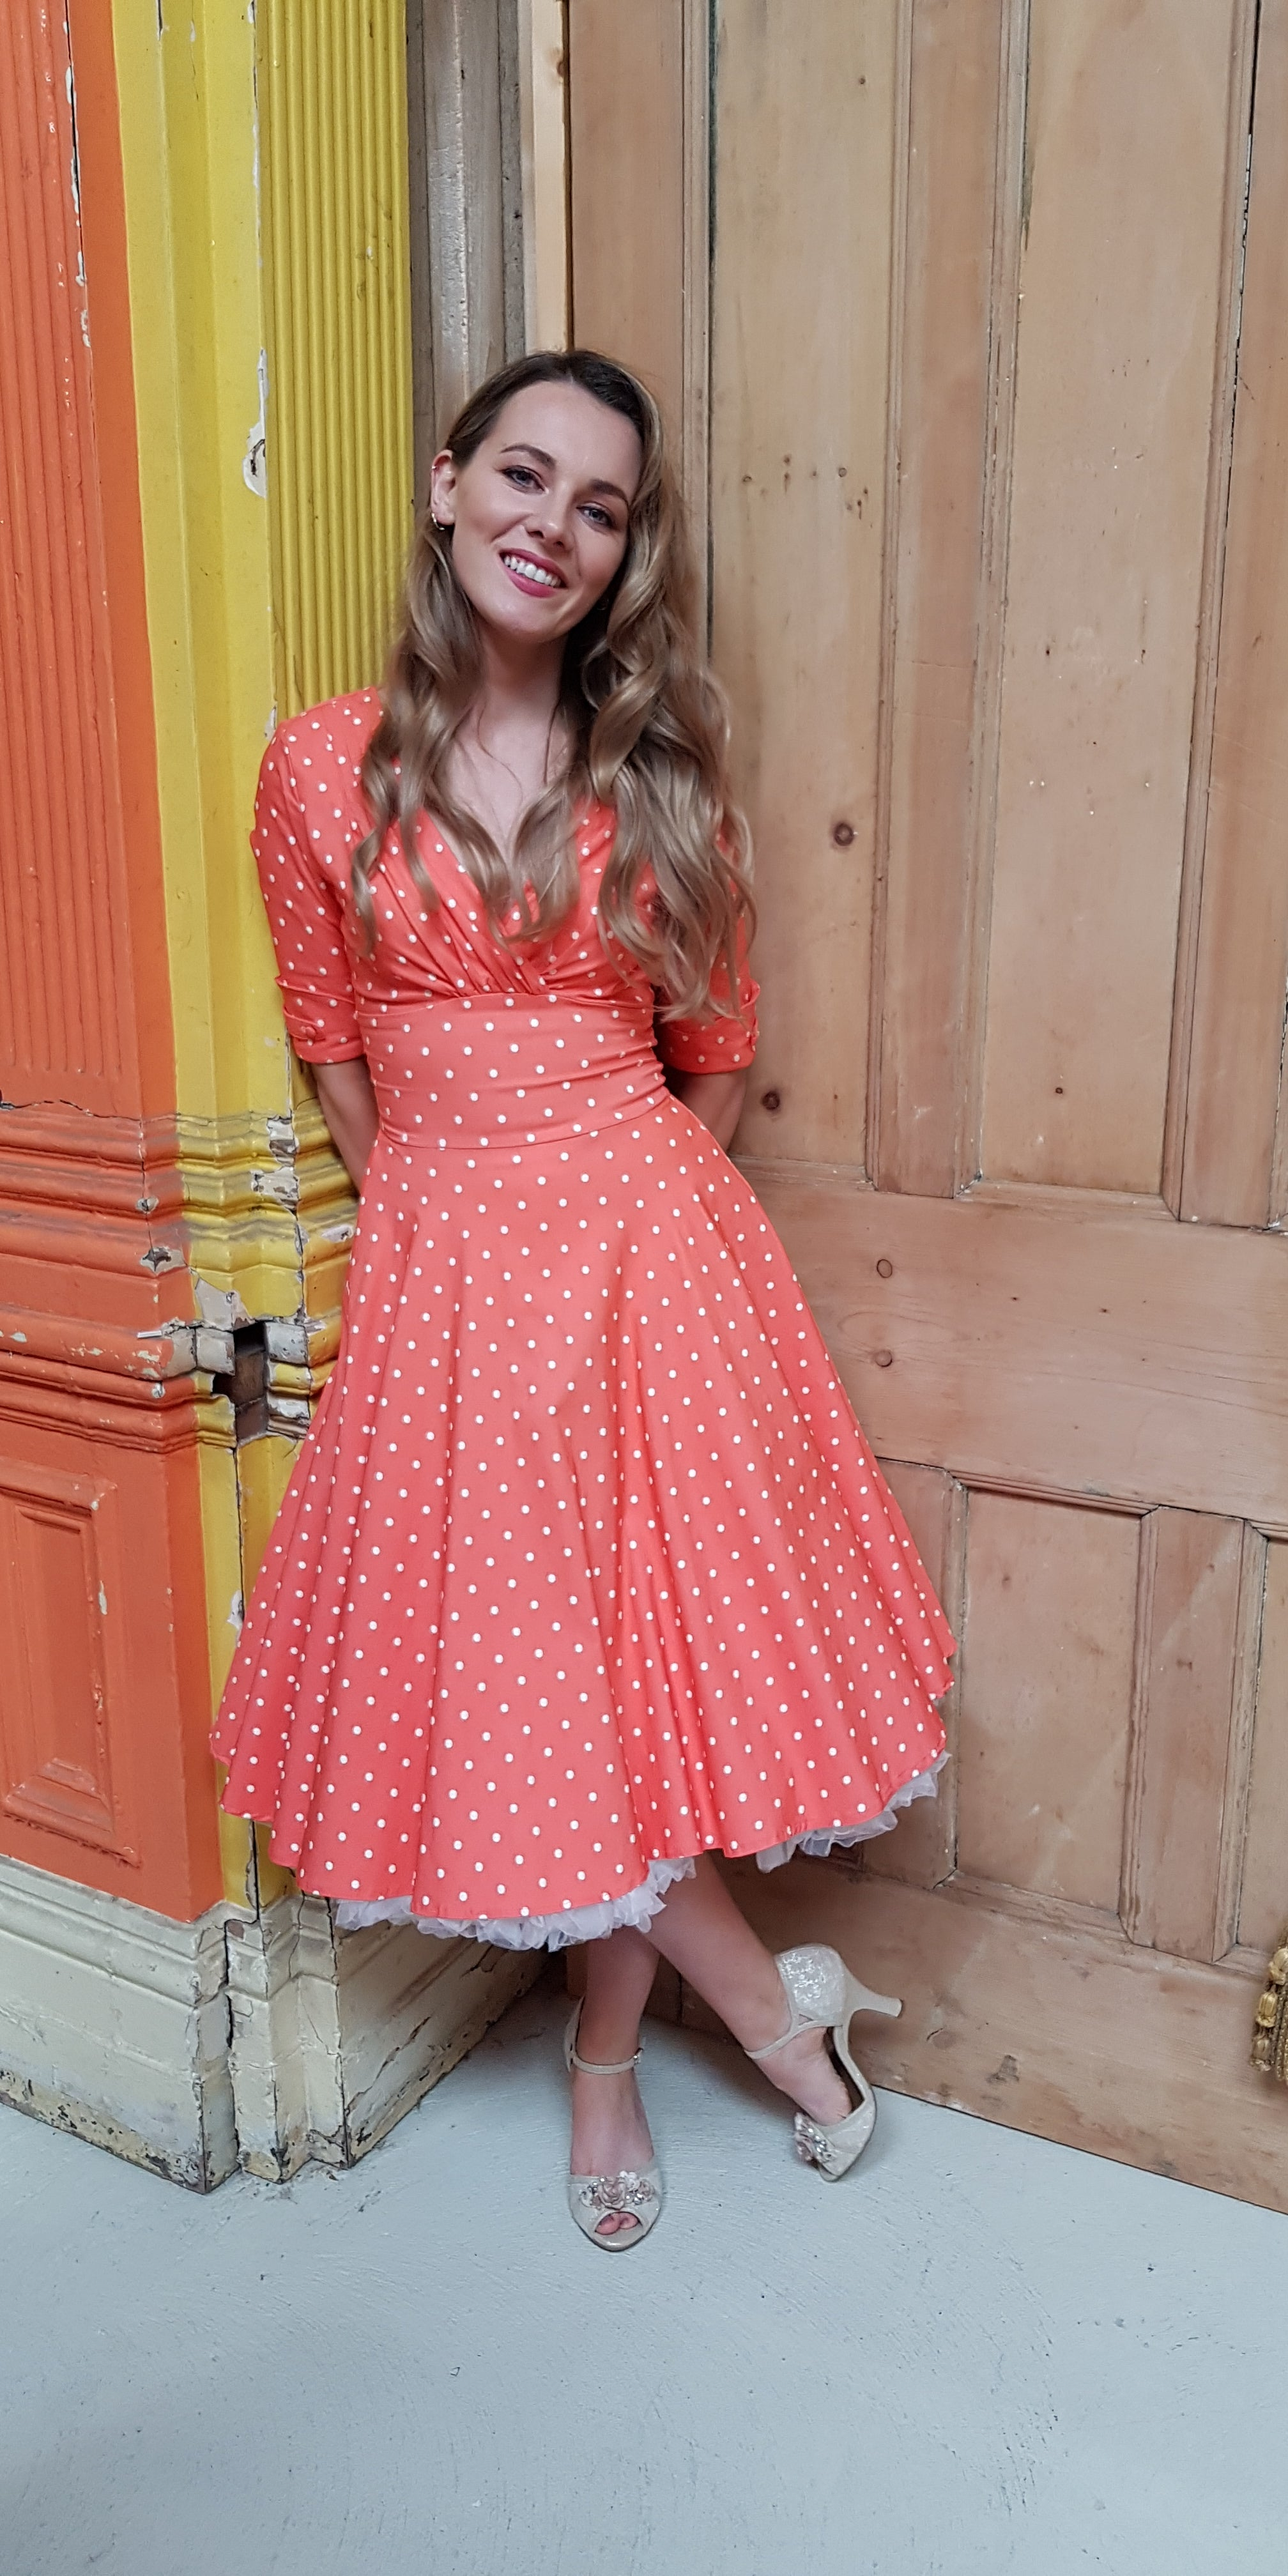 Delores Coral Polka Dot Swing Dress